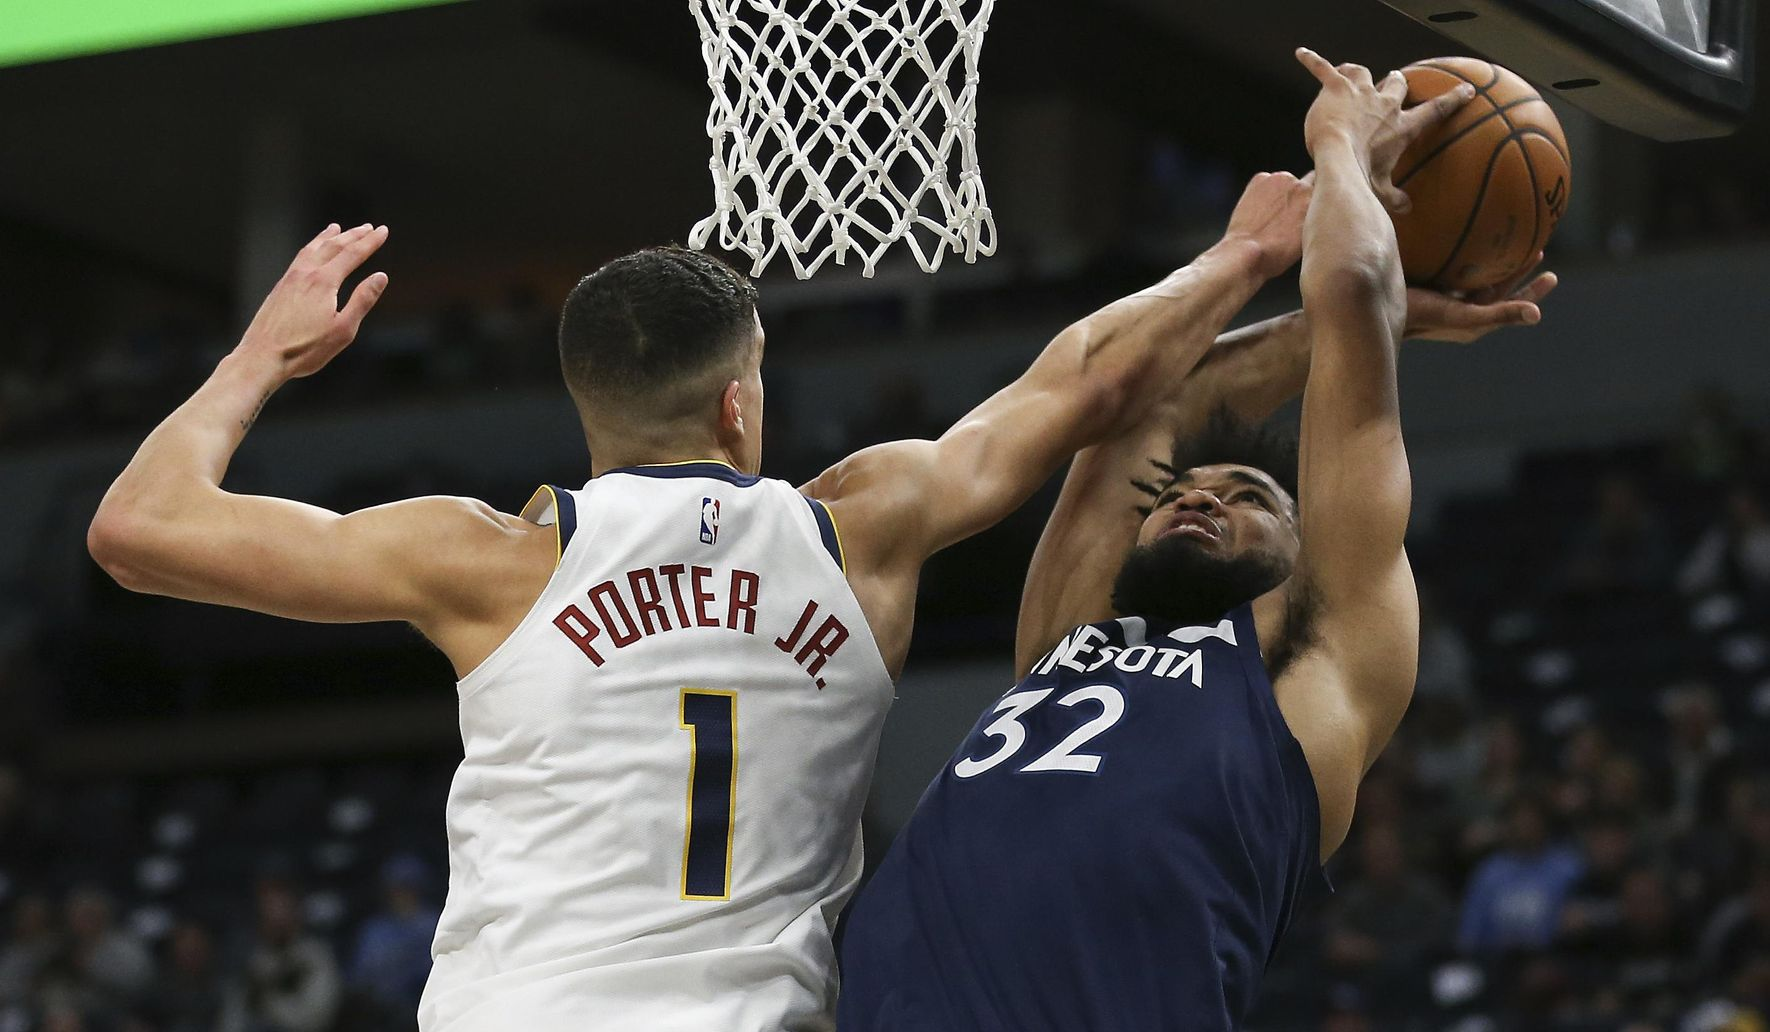 Nuggets_timberwolves_basketball_17967_c50-0-2861-1639_s1770x1032